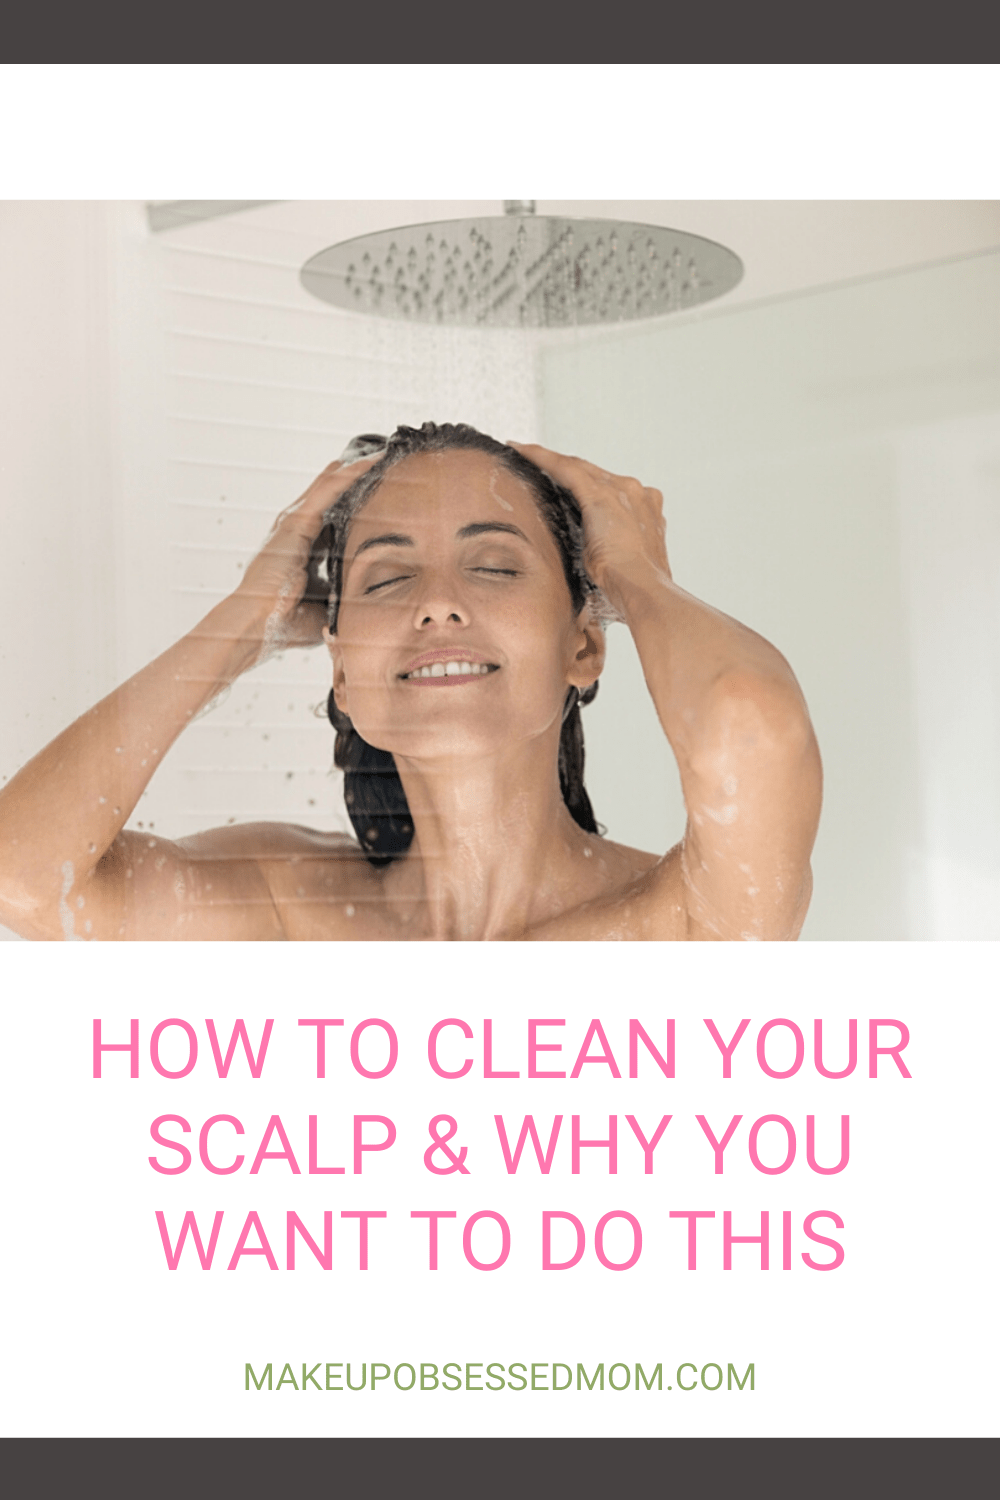 Benefits of a Clean Scalp